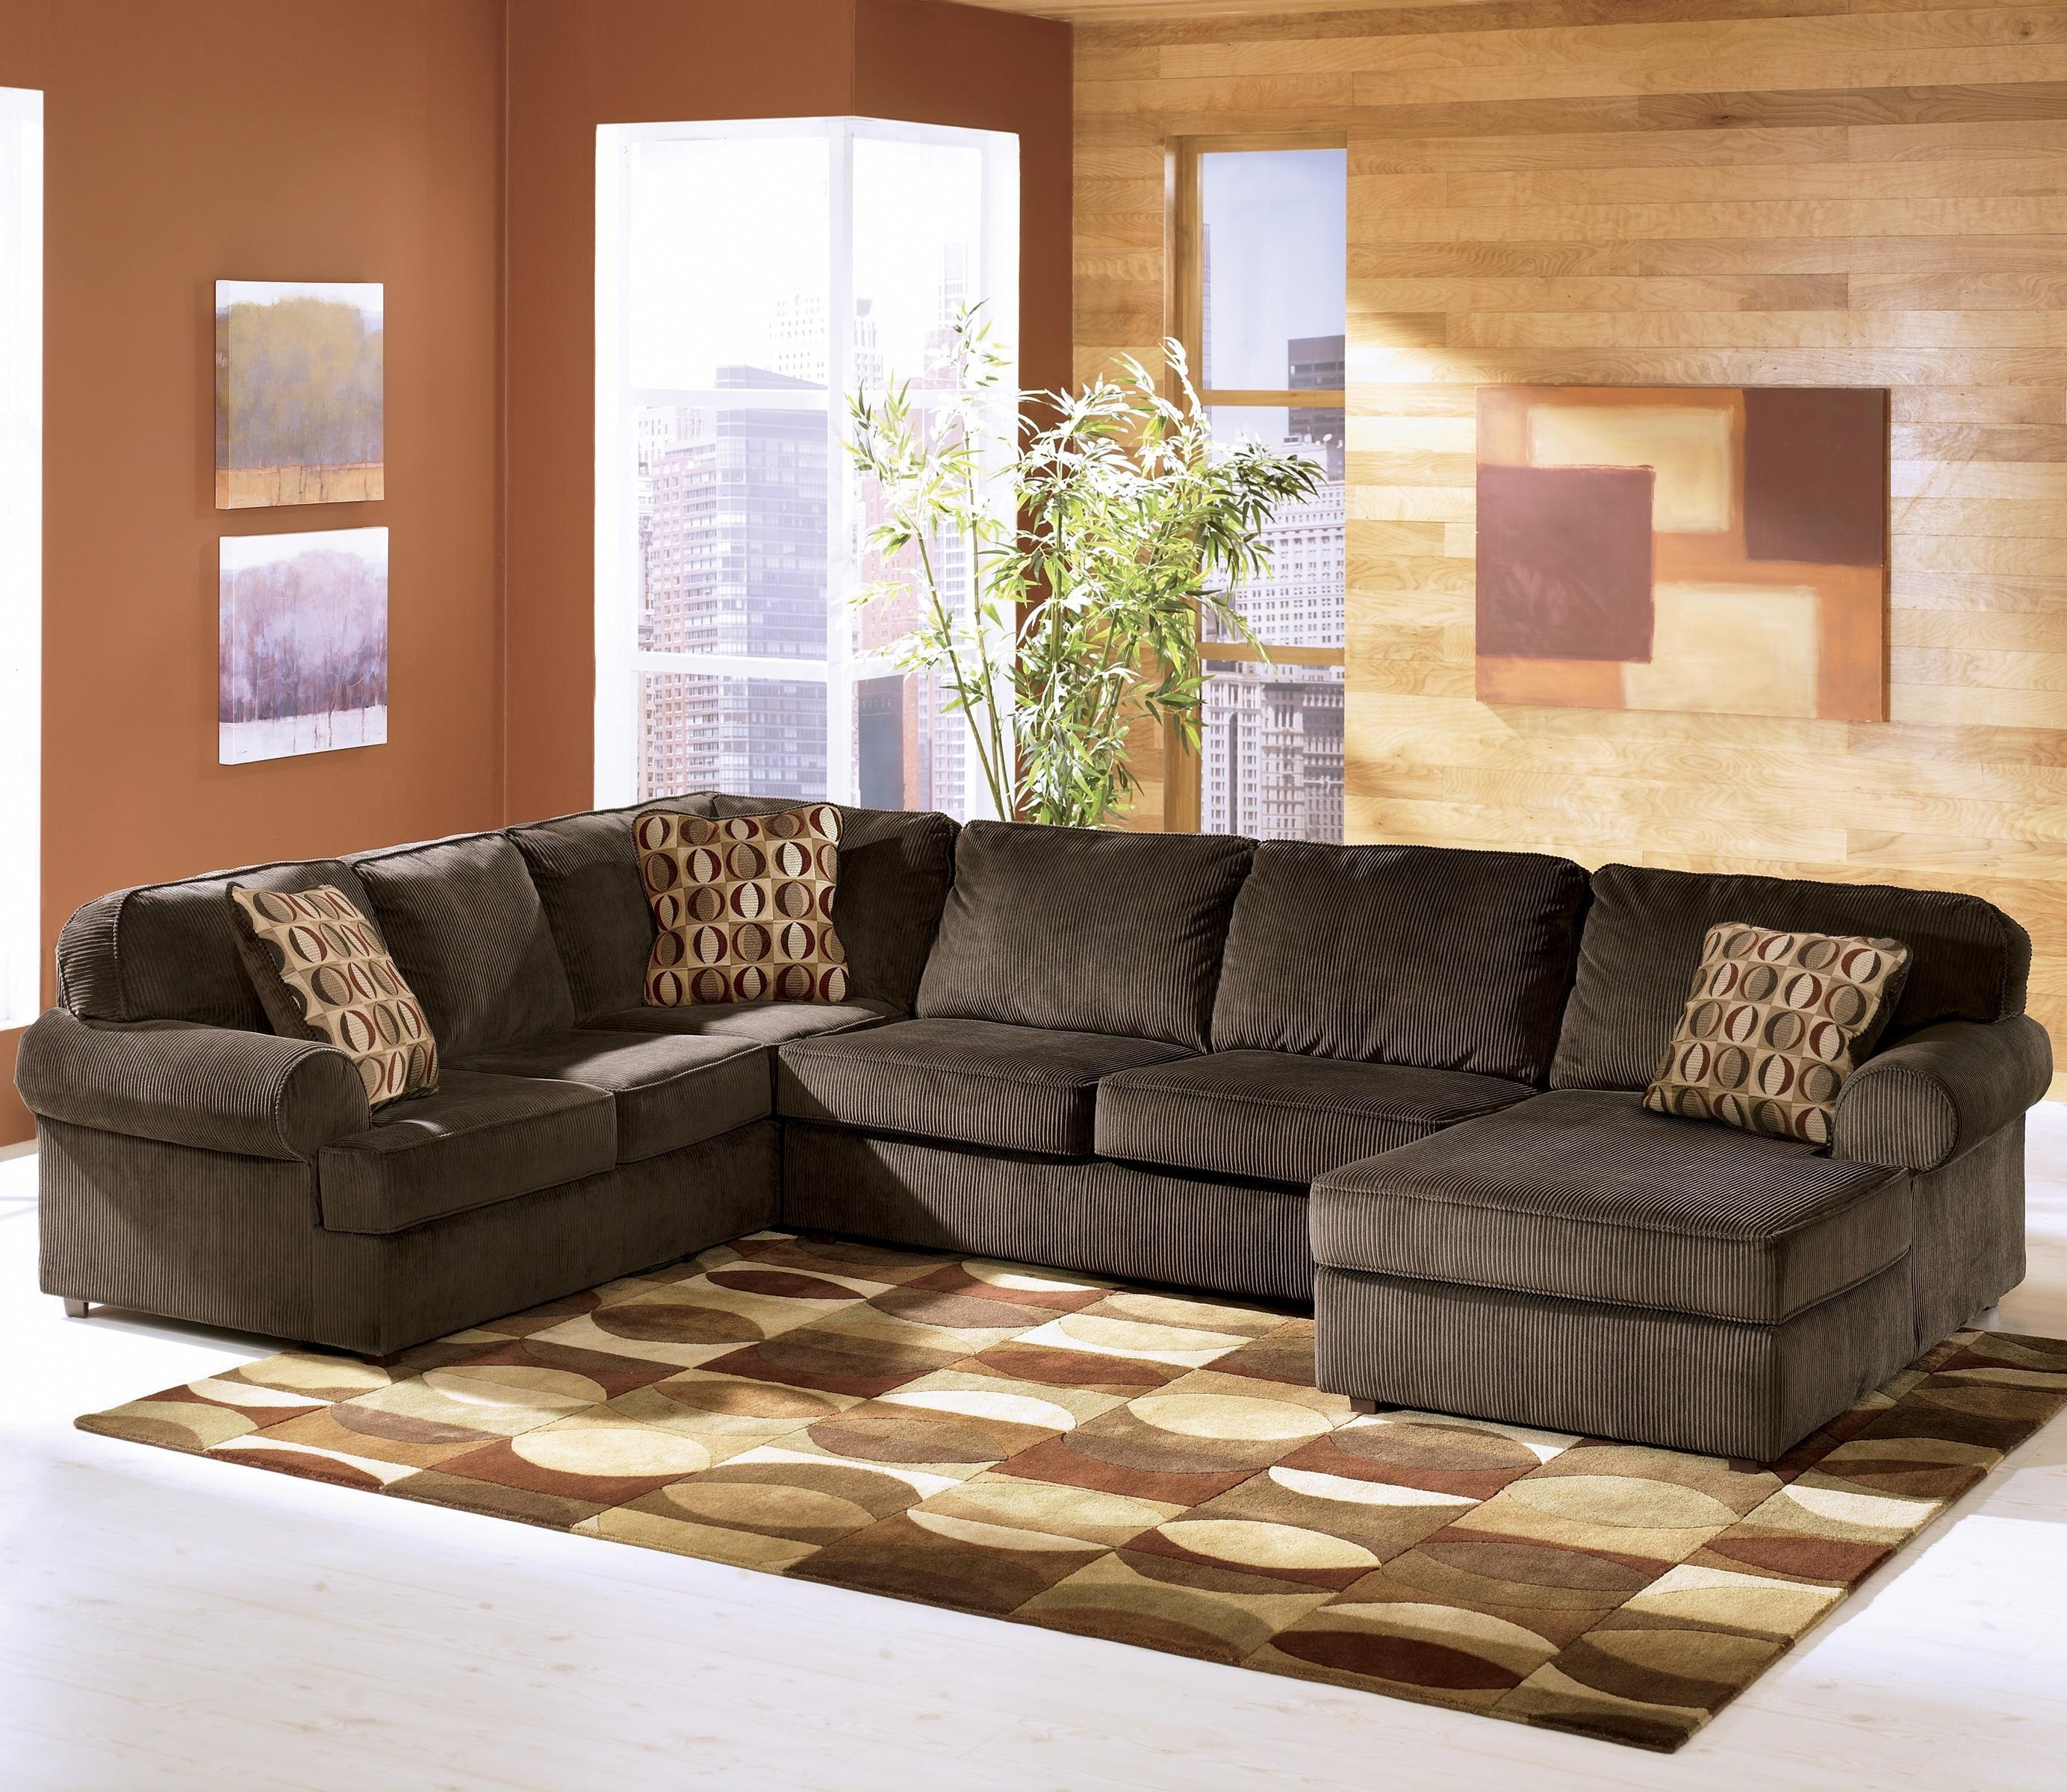 Ashley Furniture Sofa Chaises In Well Known Ashley Furniture Vista – Chocolate Casual 3 Piece Sectional With (View 10 of 15)